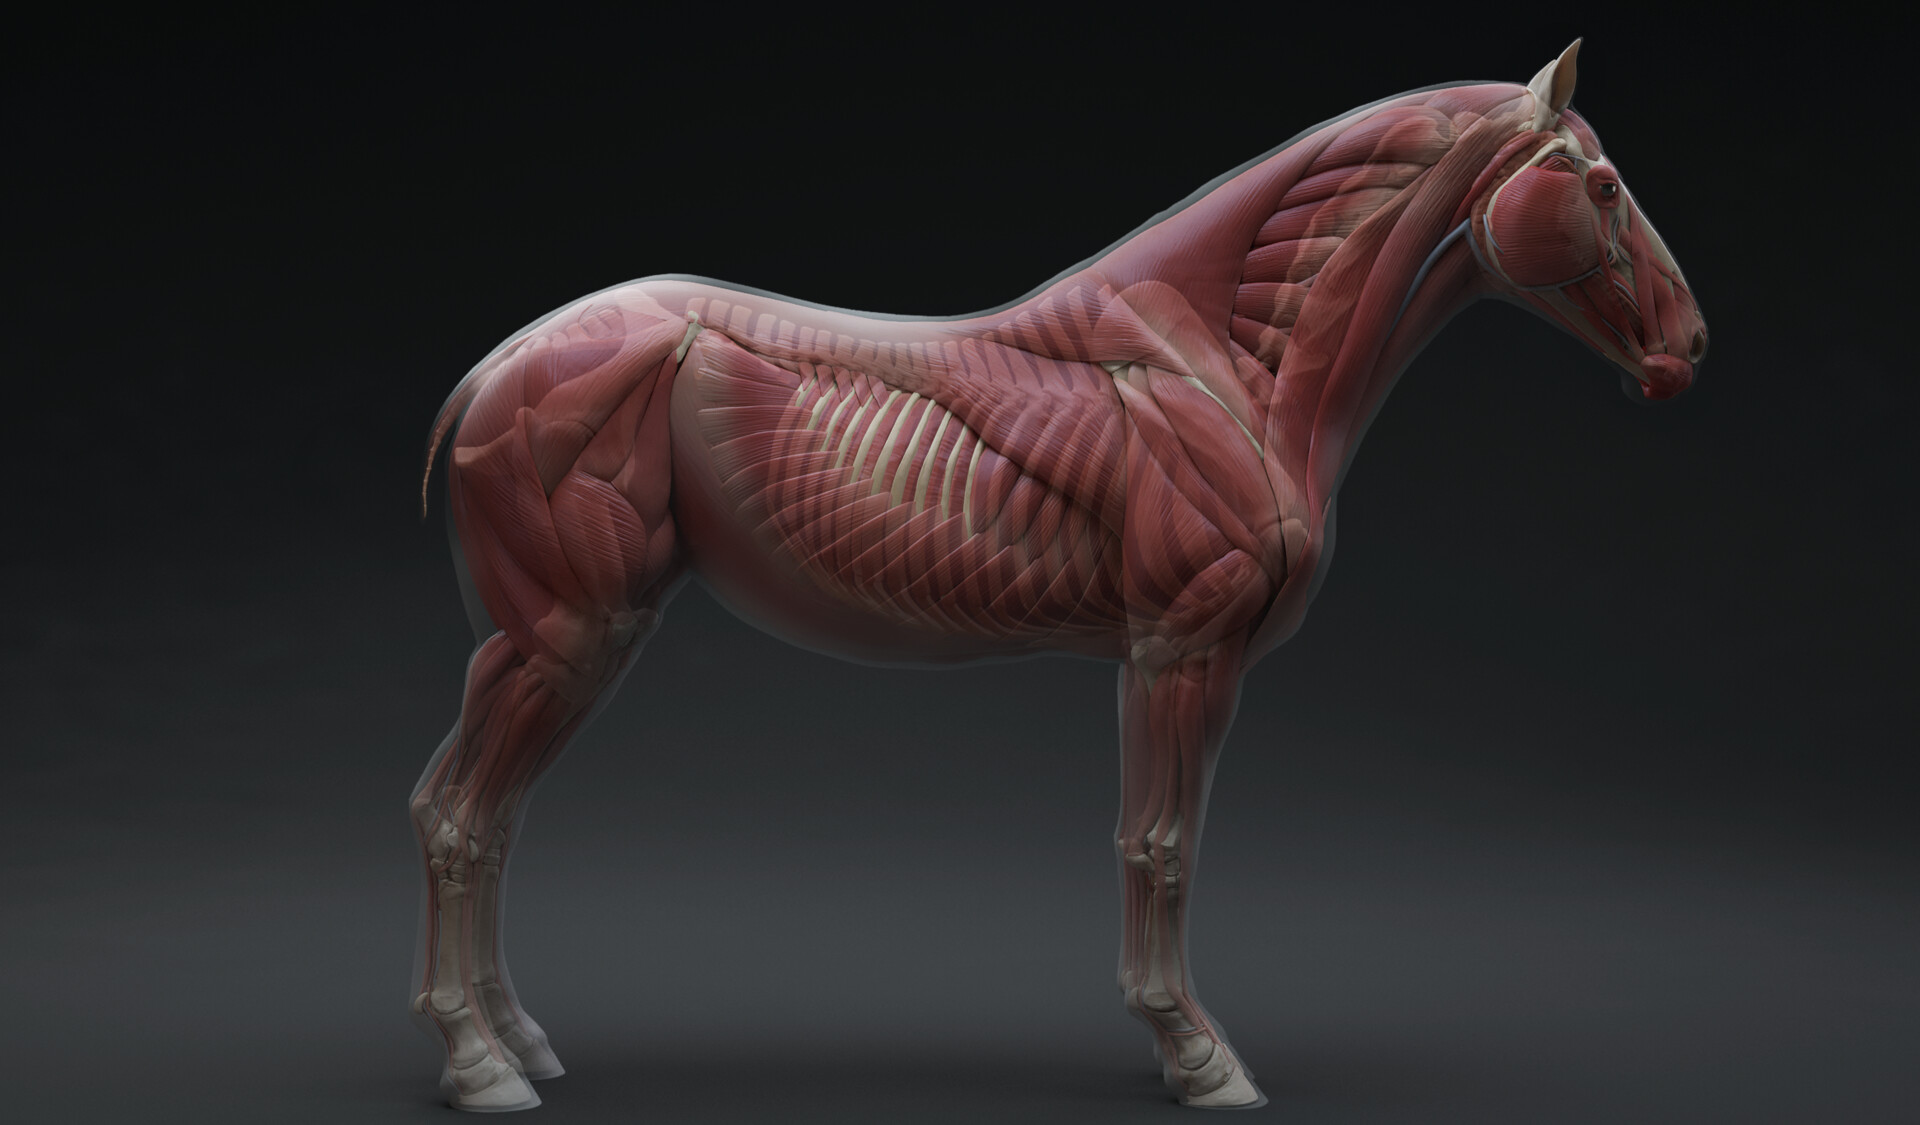 This model is available at -33% at launch! Grab it while you can :)  https://www.3dscanstore.com/ecorche-3d-models/horse-ecorche-3d-model